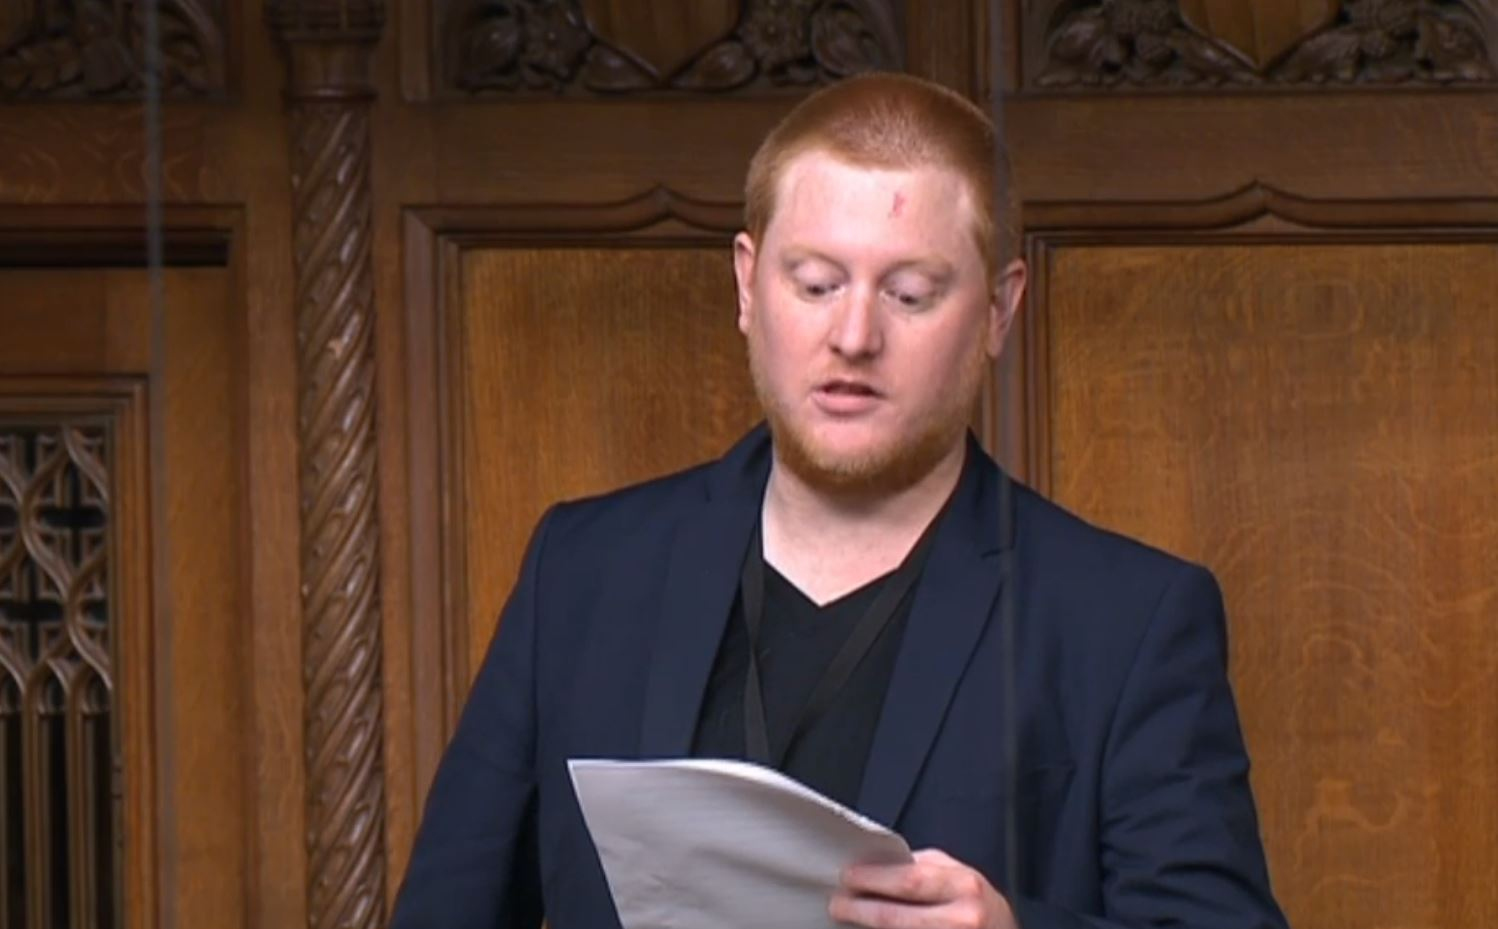 Independent MP for Sheffield Hallam Jared O'Mara speaking for the first time in the House of Commons chamber since being elected in June 2017.